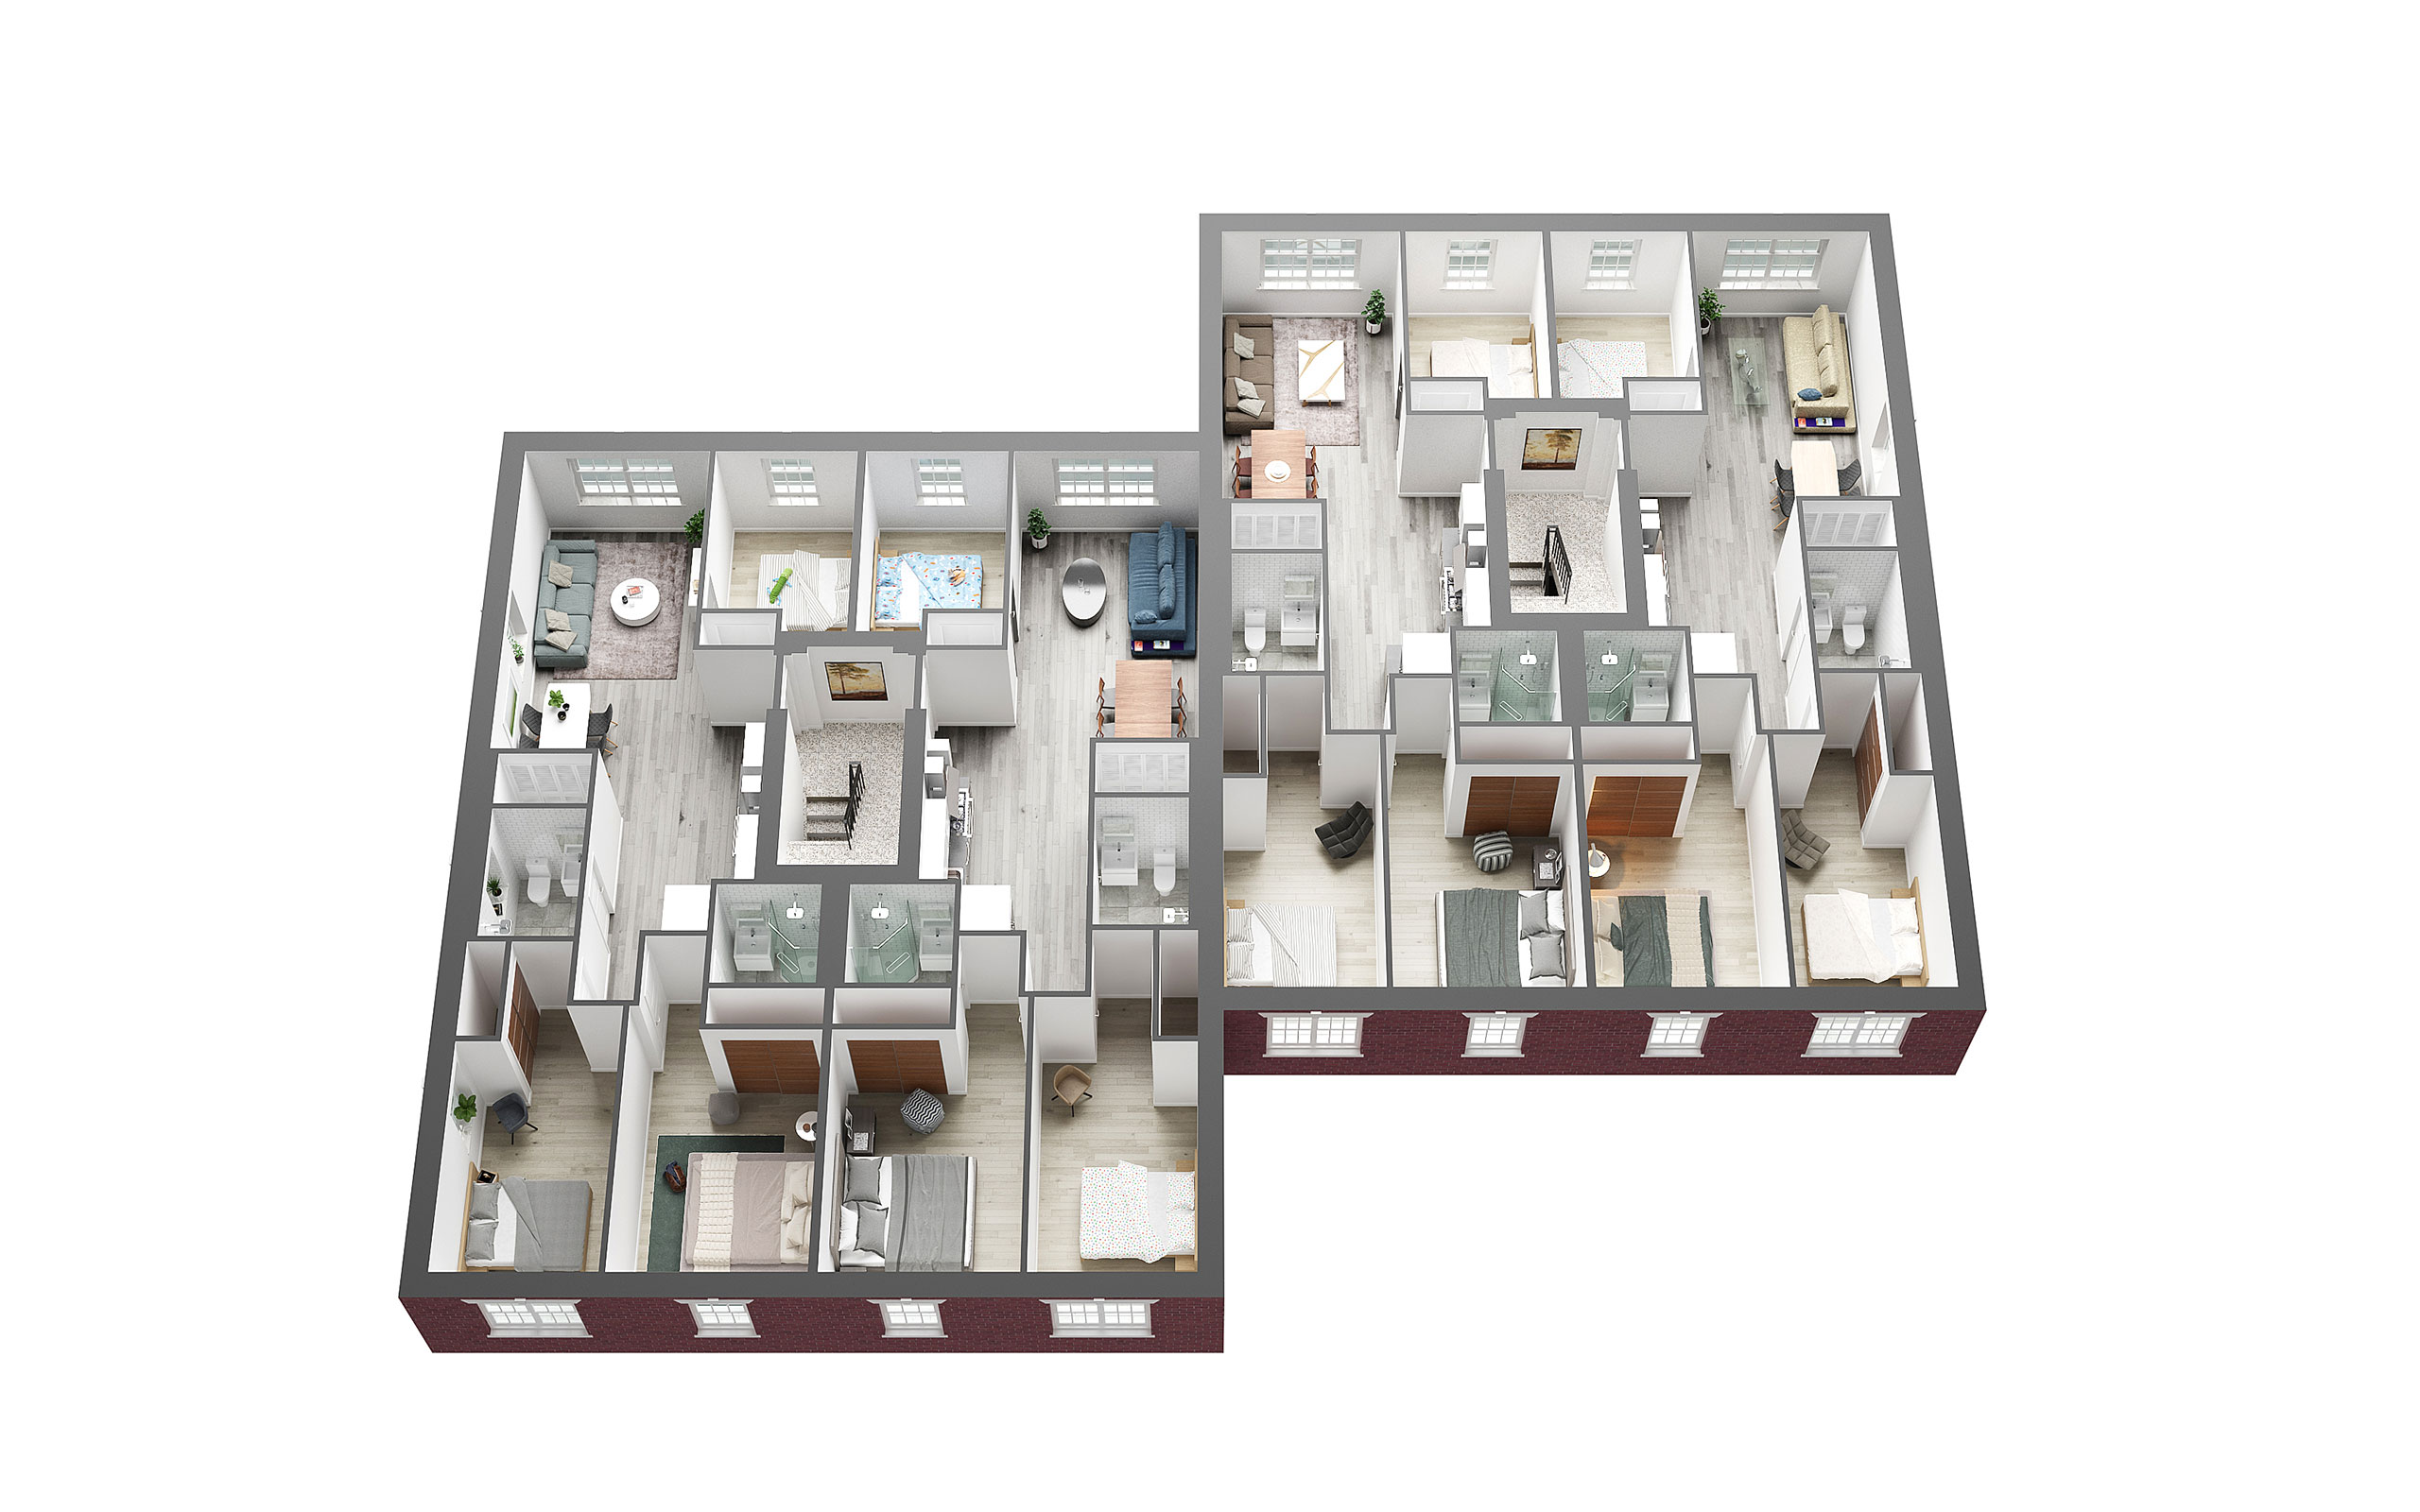 Apartment 3D Floor Plan - Creative 3D Visualization